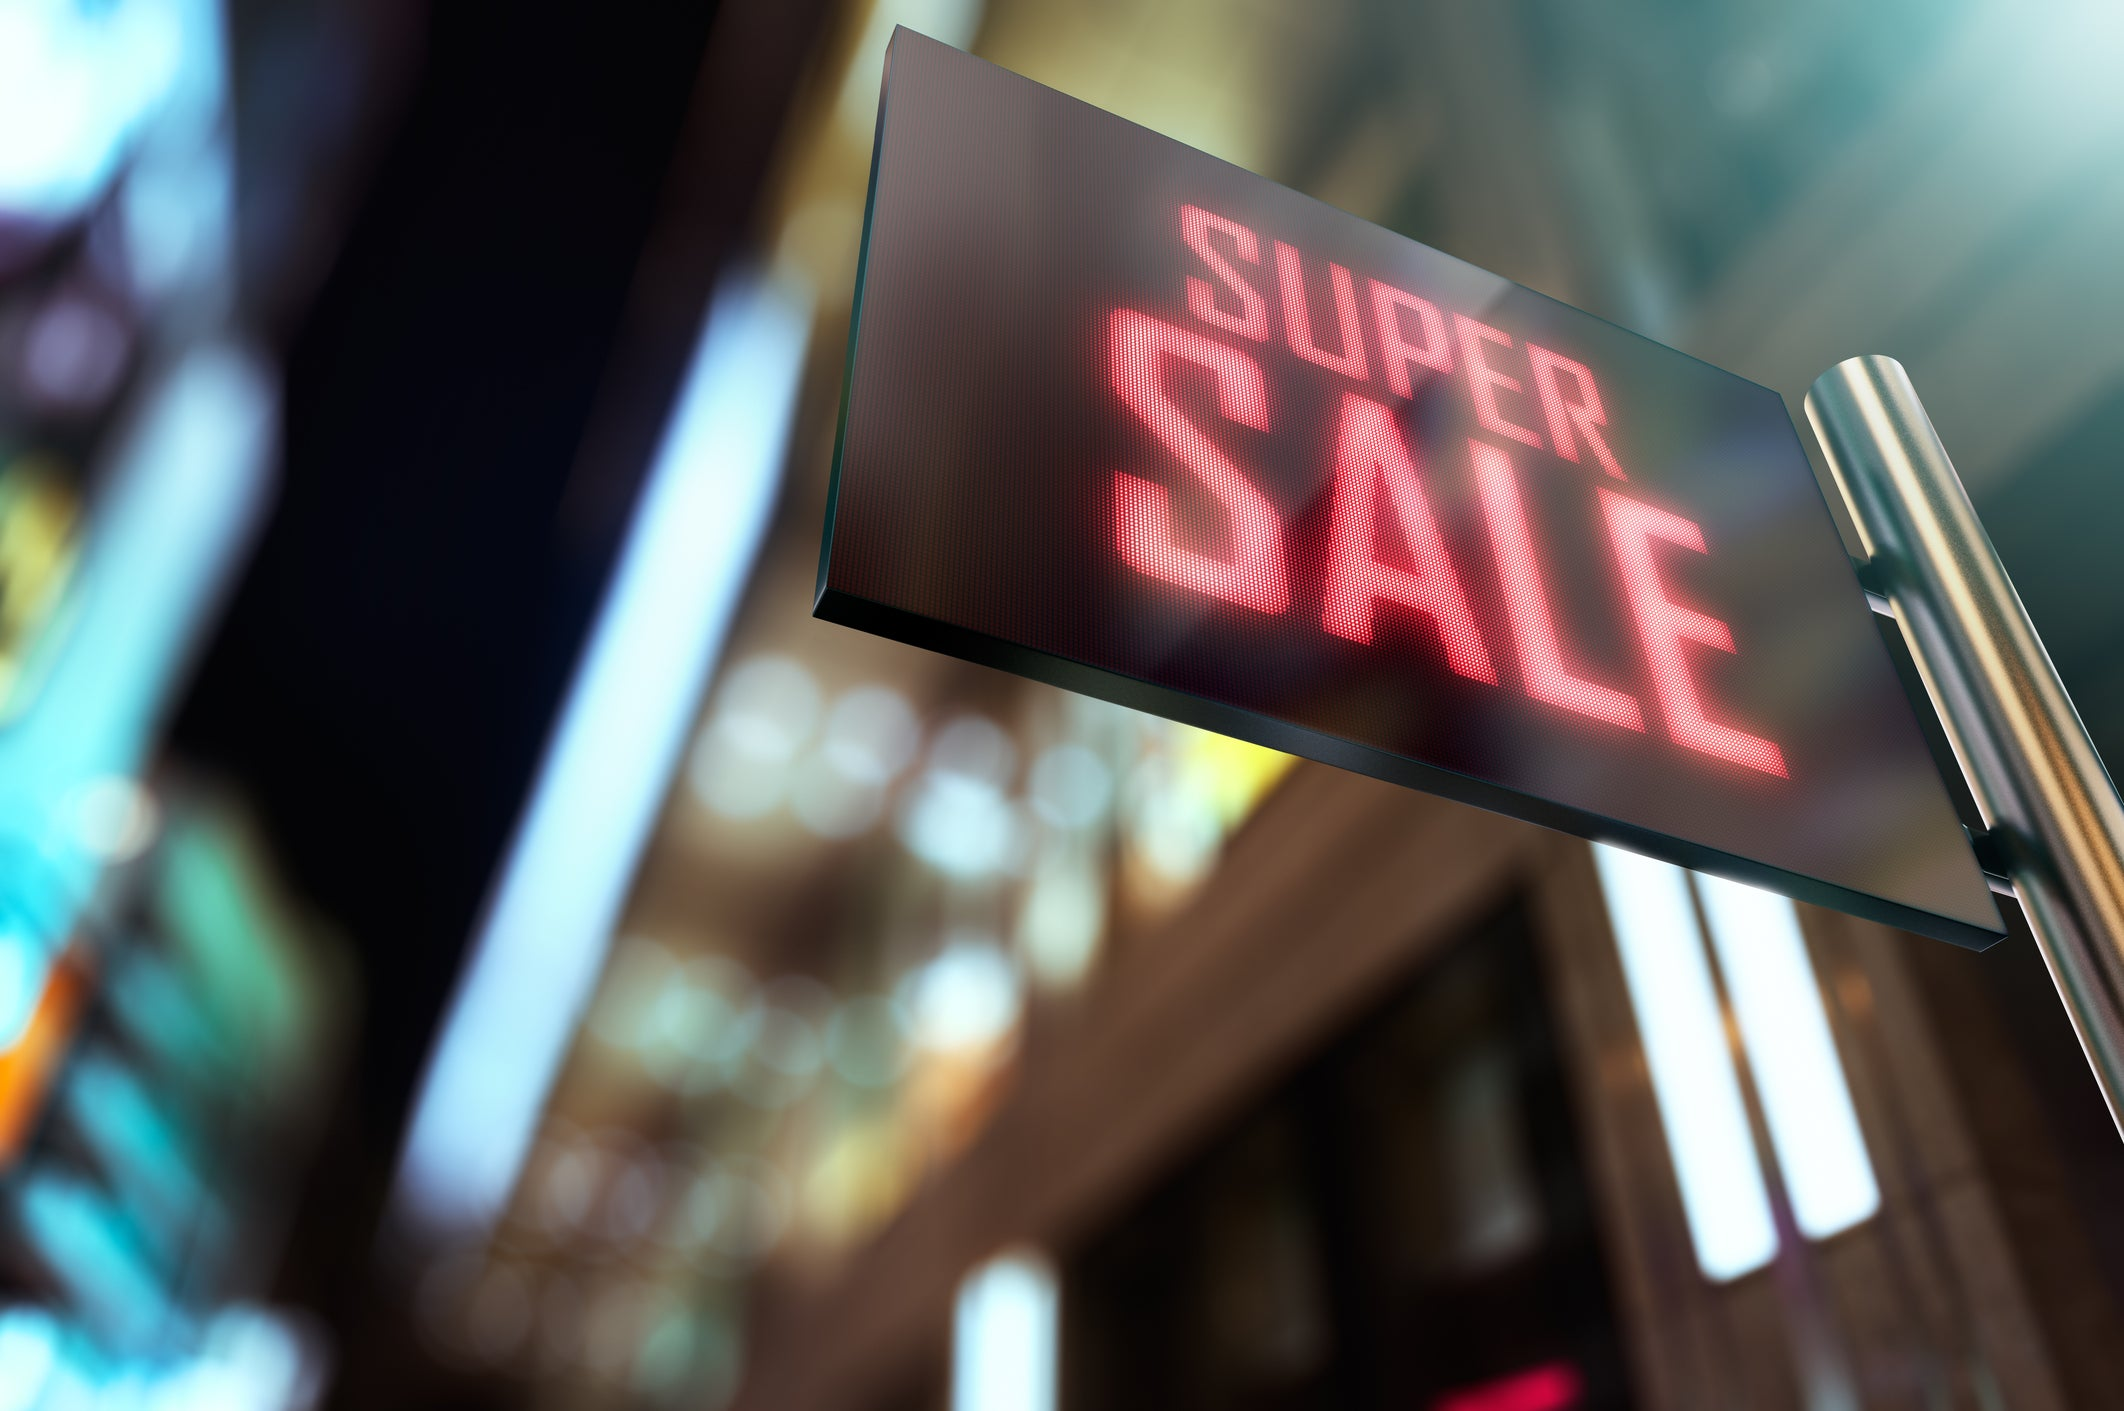 The Growth Stock Sale of 2021 Has Arrived: 3 Stocks to Buy Now